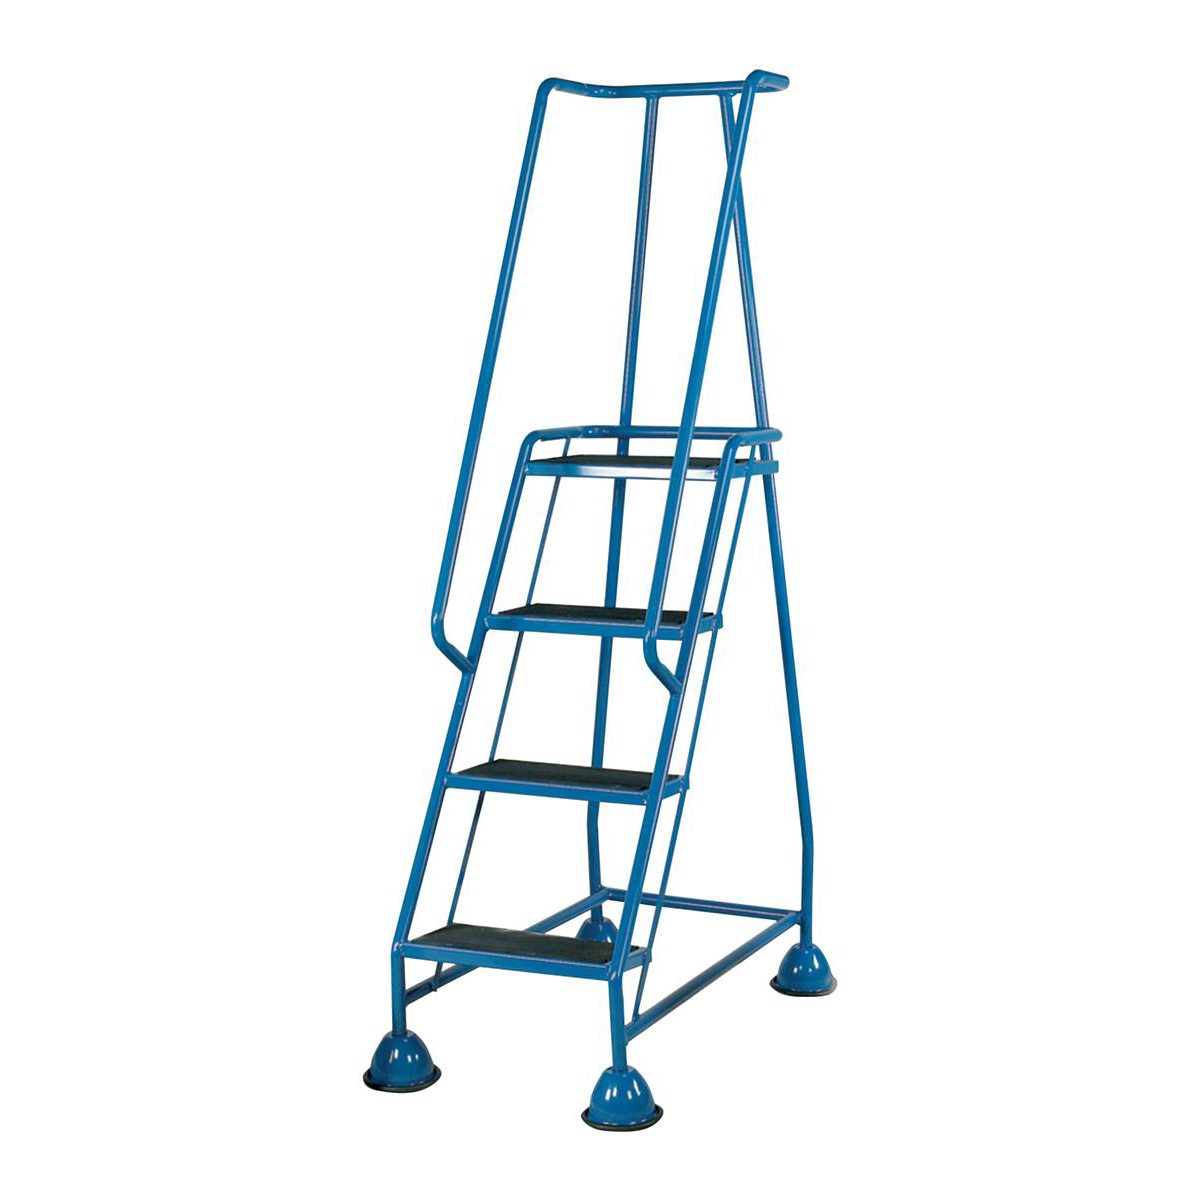 Steps Mobile Steps on Retractable Castors Double Handrails Four Tread W580xD955xH1683mm Blue